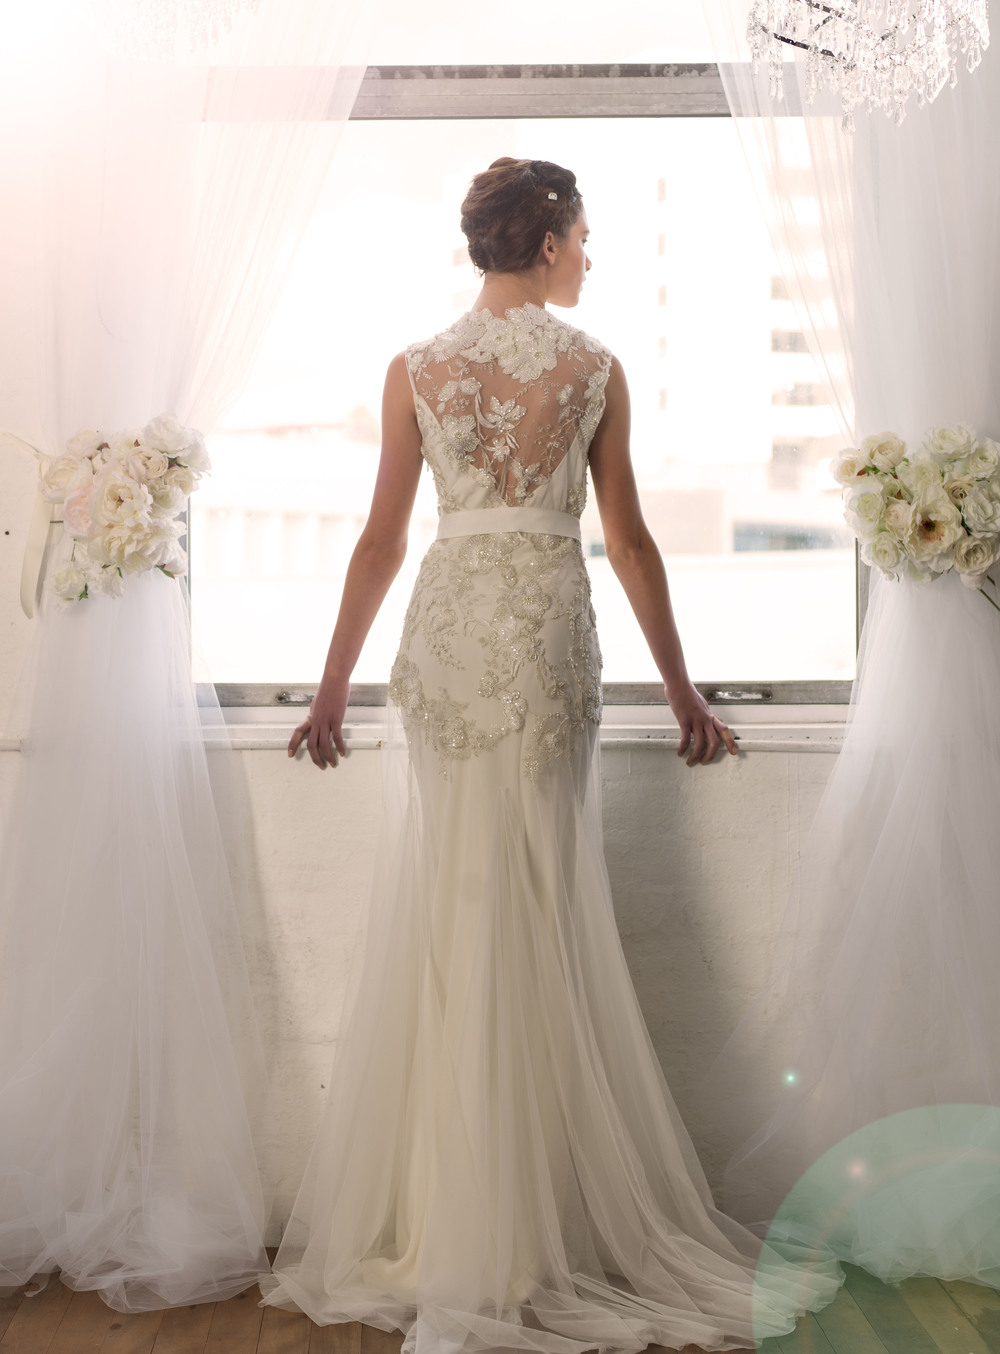 Sarah Janks Wedding Gown - Fall 2014 Collection {Delilah, the backside} : embroidered flowers accented with faceted beads on a sheer, tulle overlay